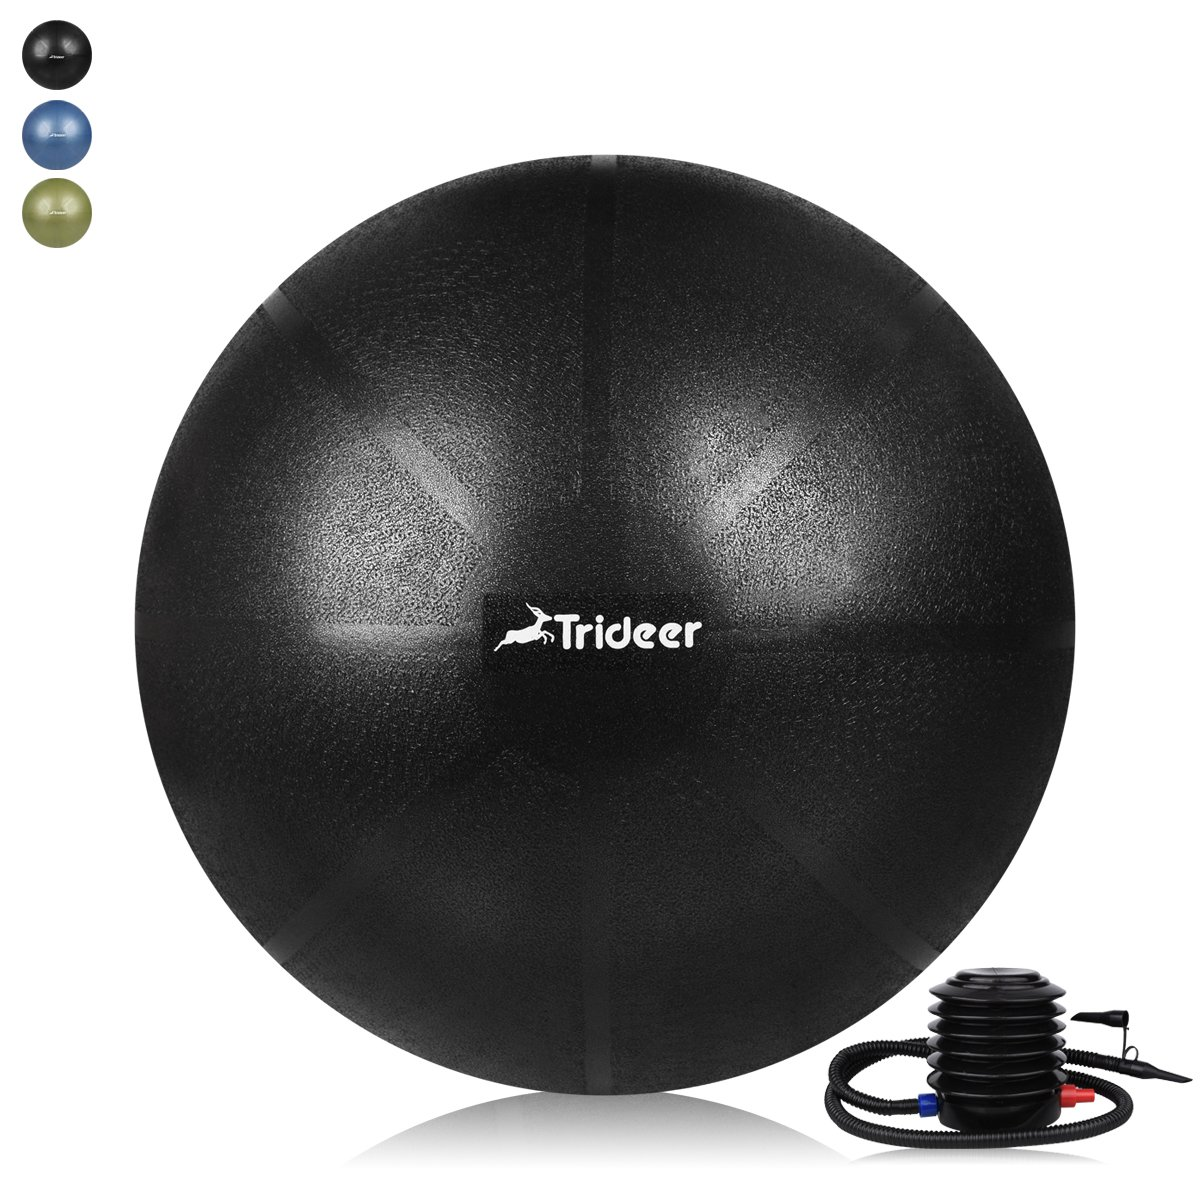 Trideer Exercise Ball (Multiple Color), Yoga Ball, Birthing Ball with Quick Pump, Anti-Burst & Extra Thick, Heavy Duty Ball Chair, Stability Ball Supports 2200lbs by Trideer (Image #2)